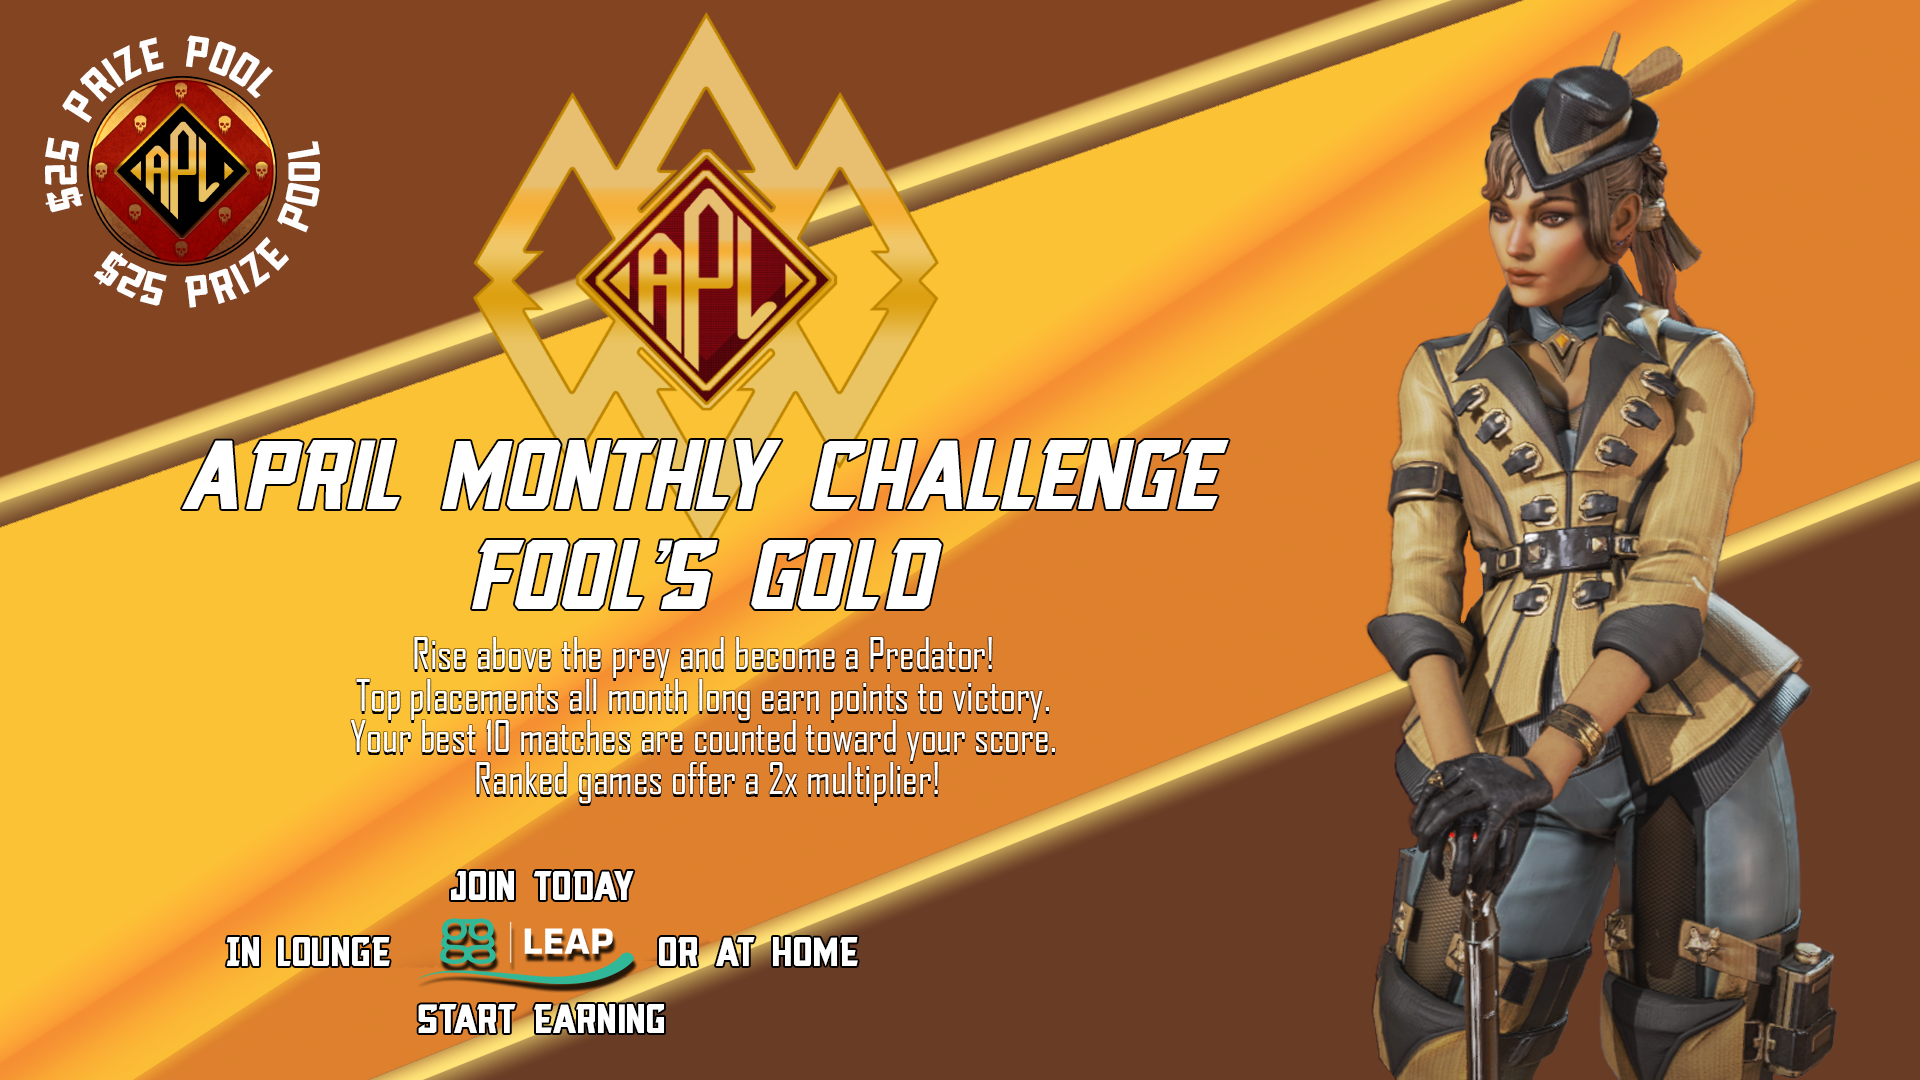 - April Monthly Challenge Fools Gold 1920x1080 1 - Apex Predator League presented by 1Life2Play fueled by Monster Energy